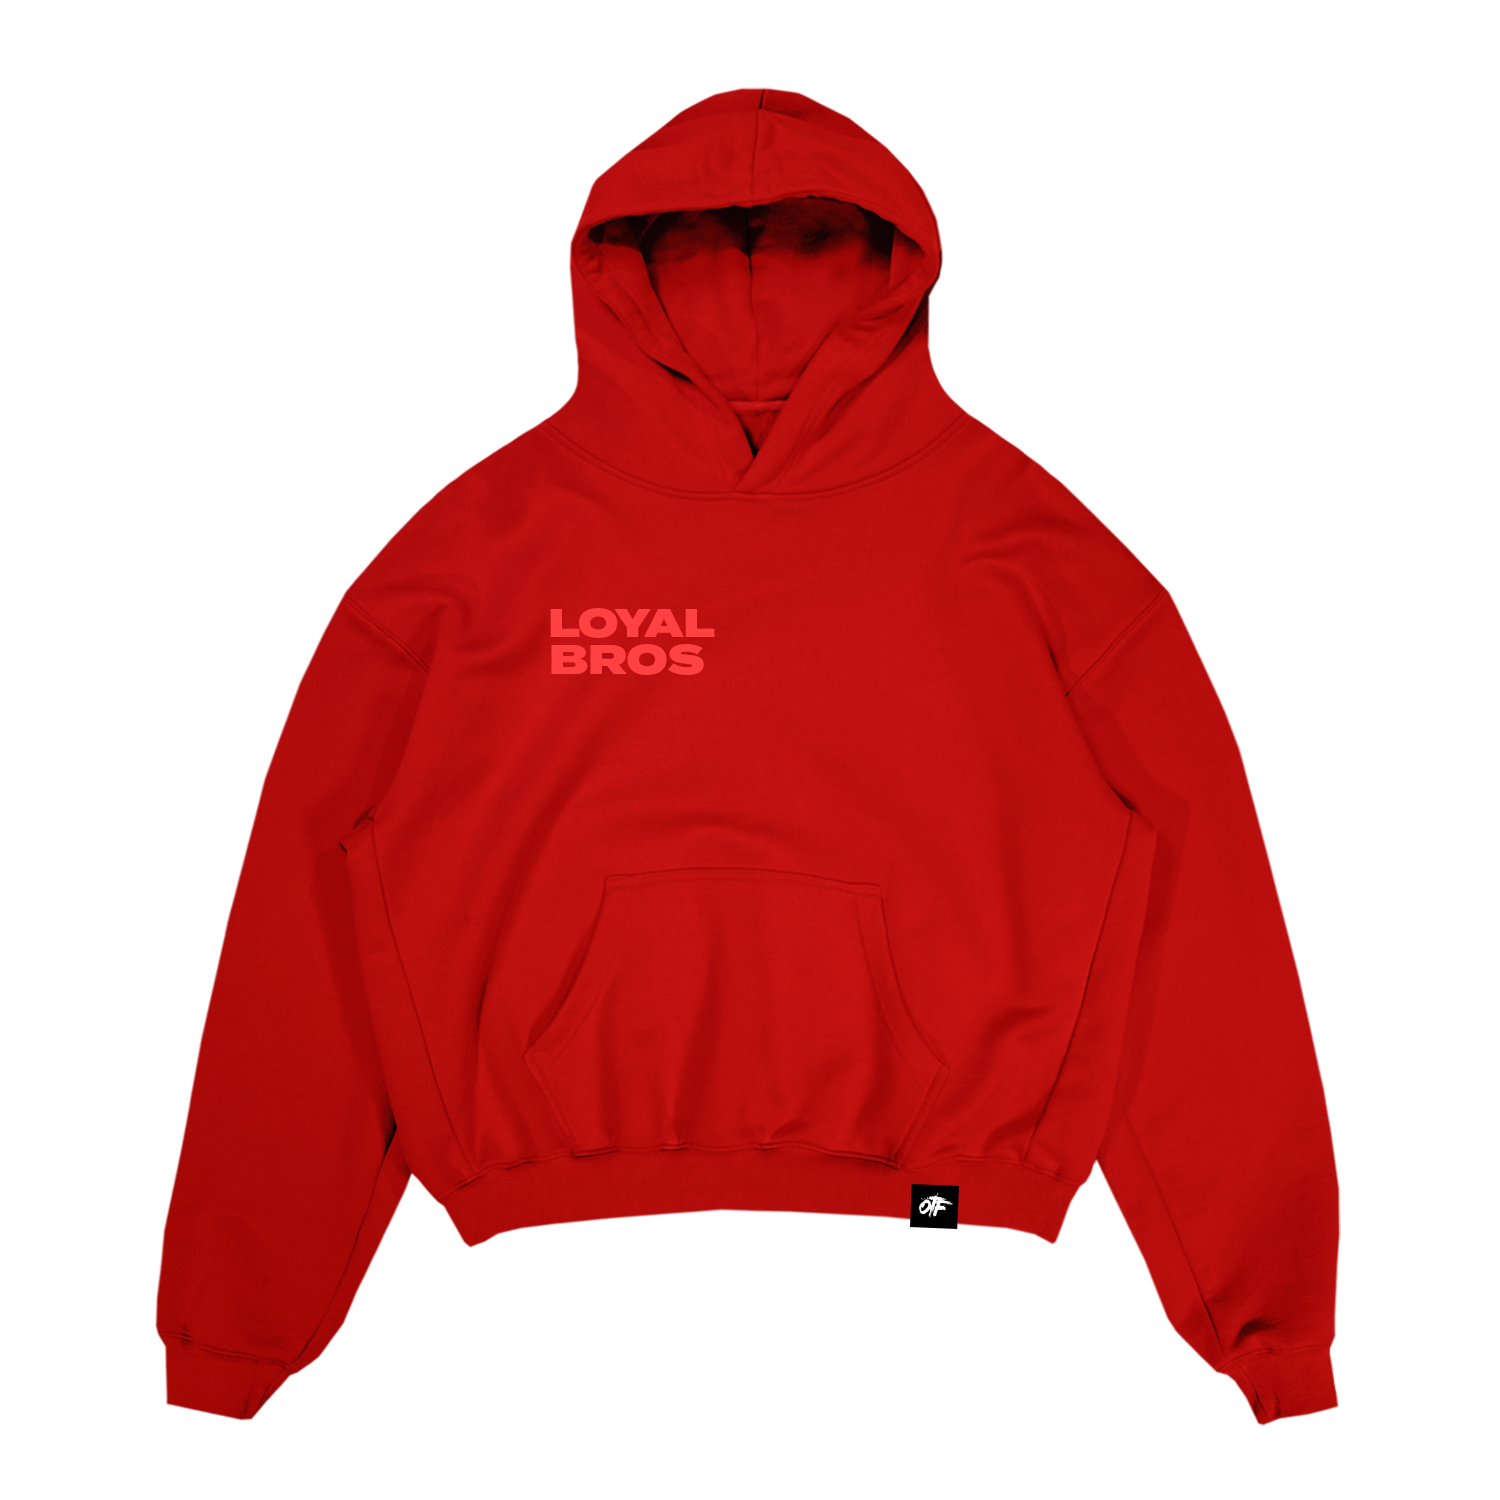 Loyal Bros Hoodie Red